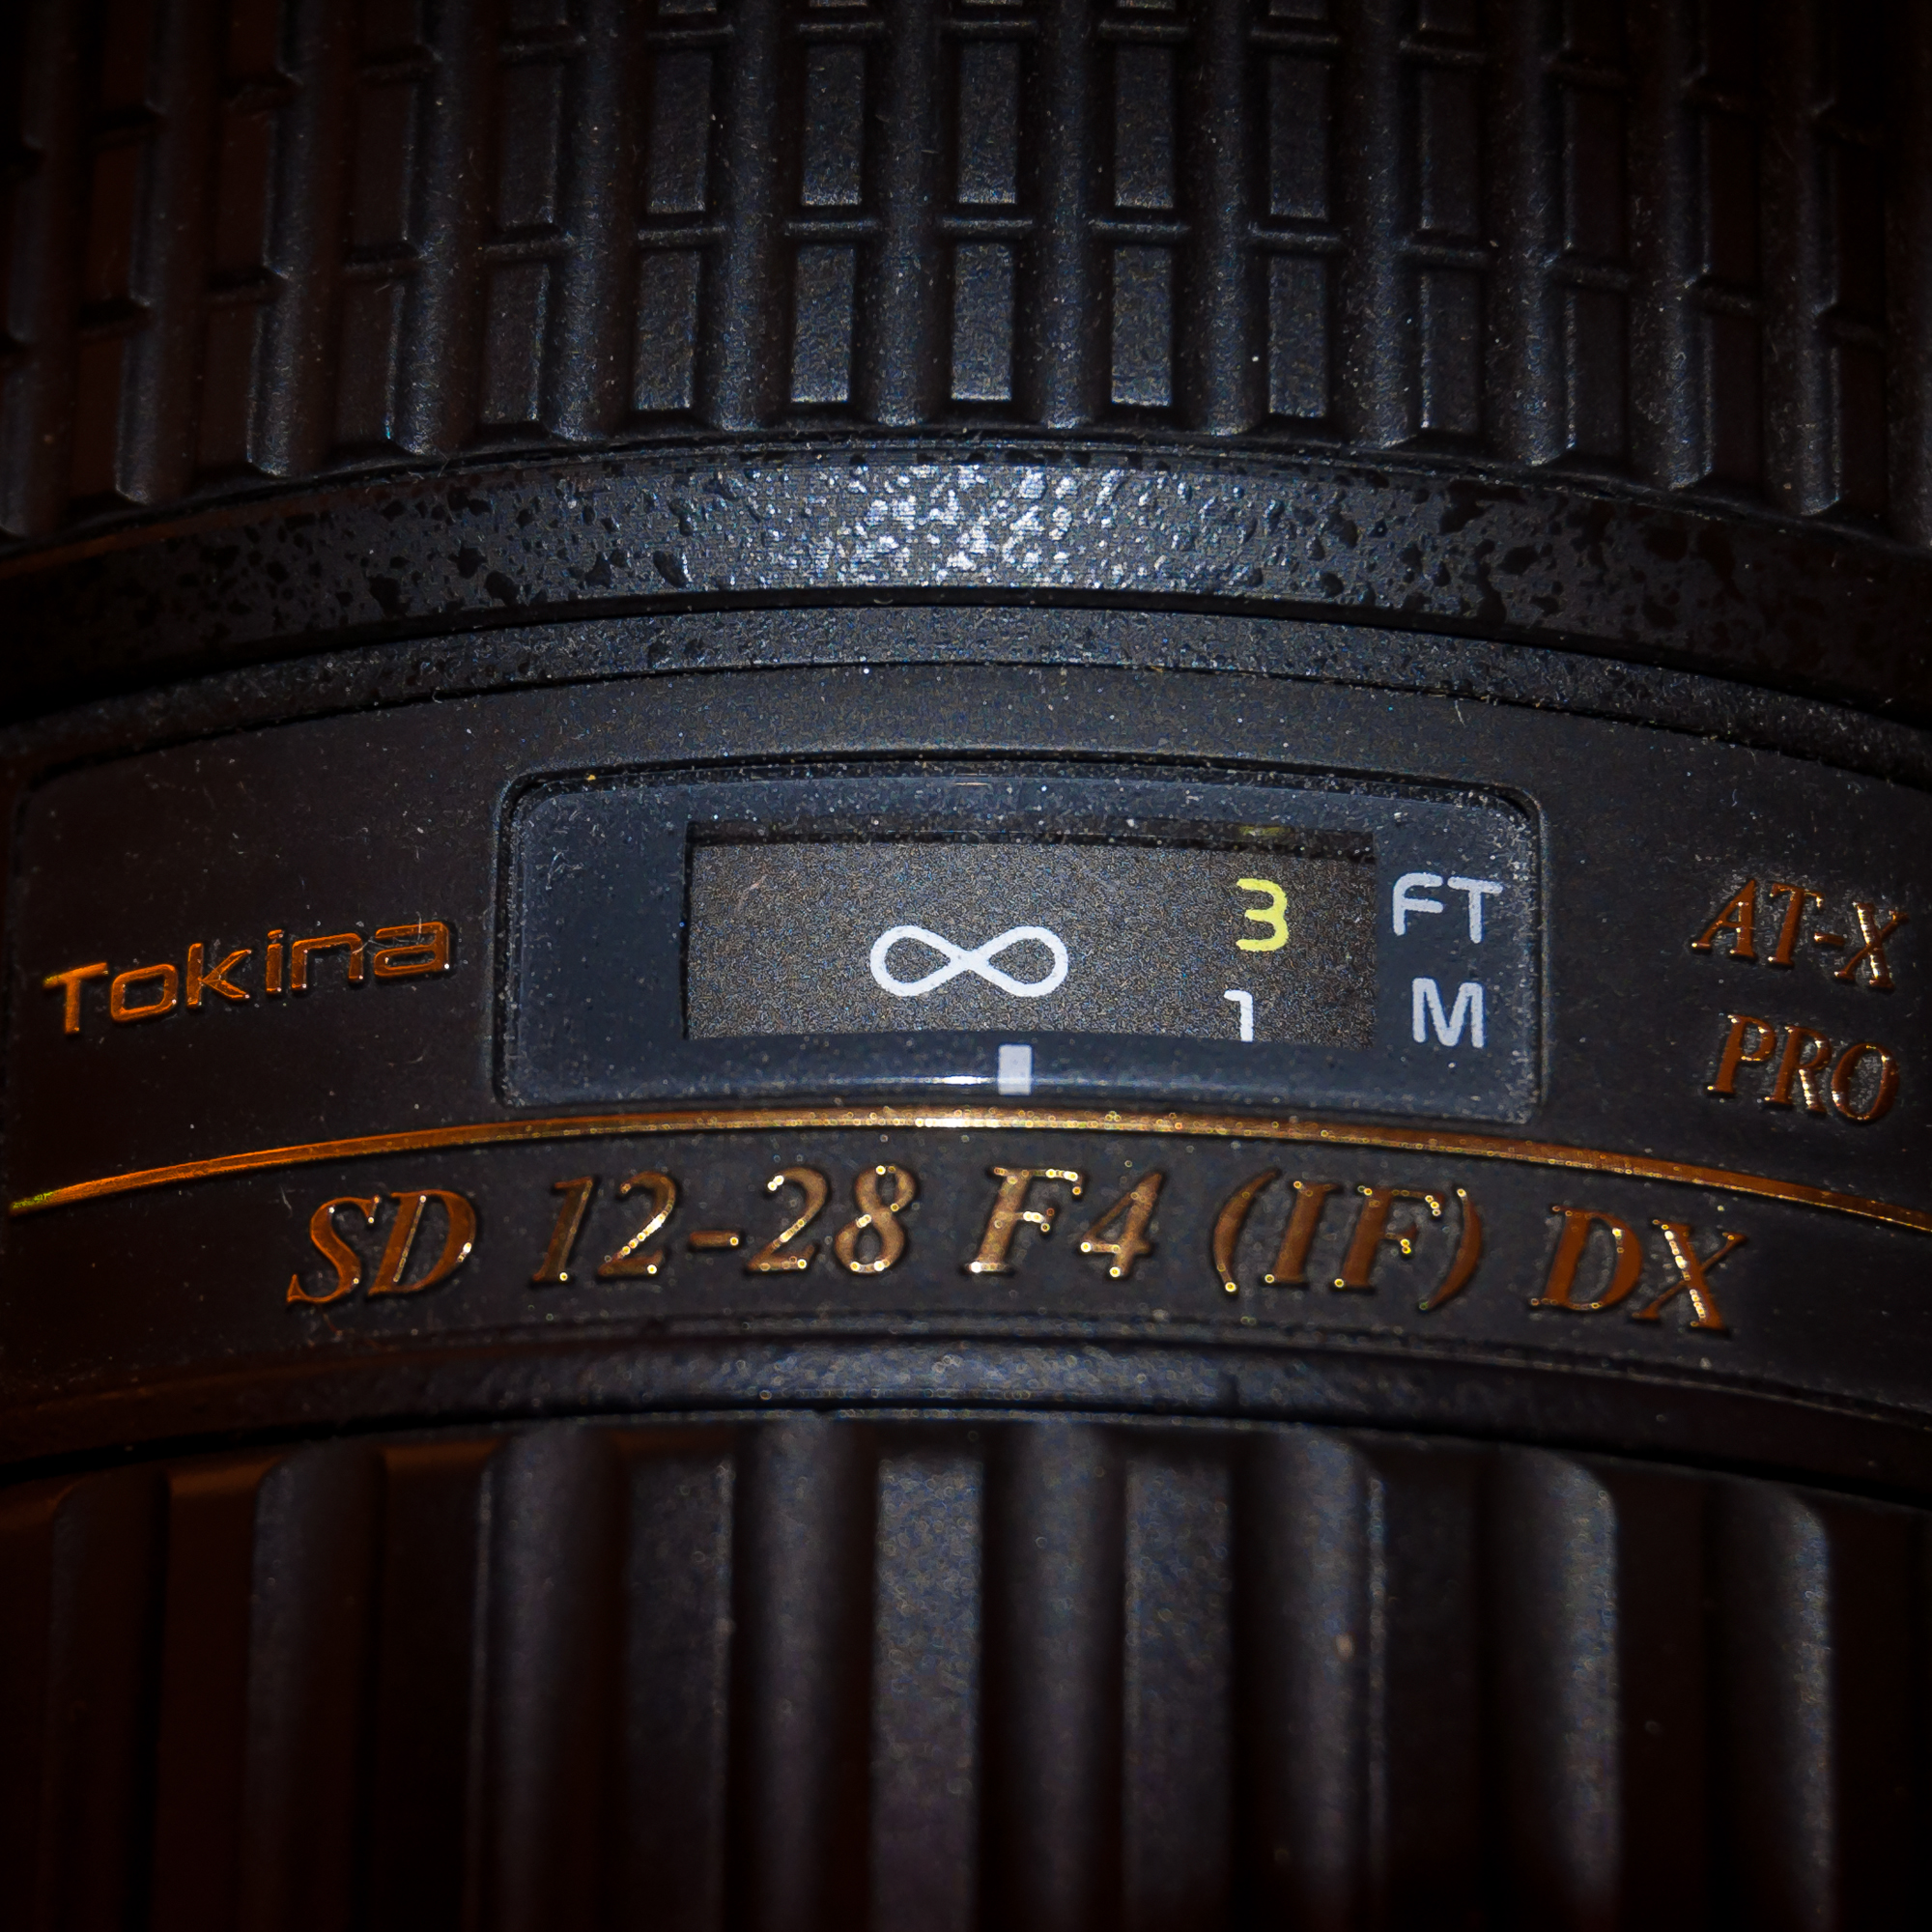 """My Tokina 12-28 focused at approximately 10 feet away at 12mm, which I find to be a nice """"sweet spot"""" where everything from small bathrooms, to exteriors, to kitchens will all be in focus. On many occasions, I leave my lens on this setting for entire shoots and everything looks great."""